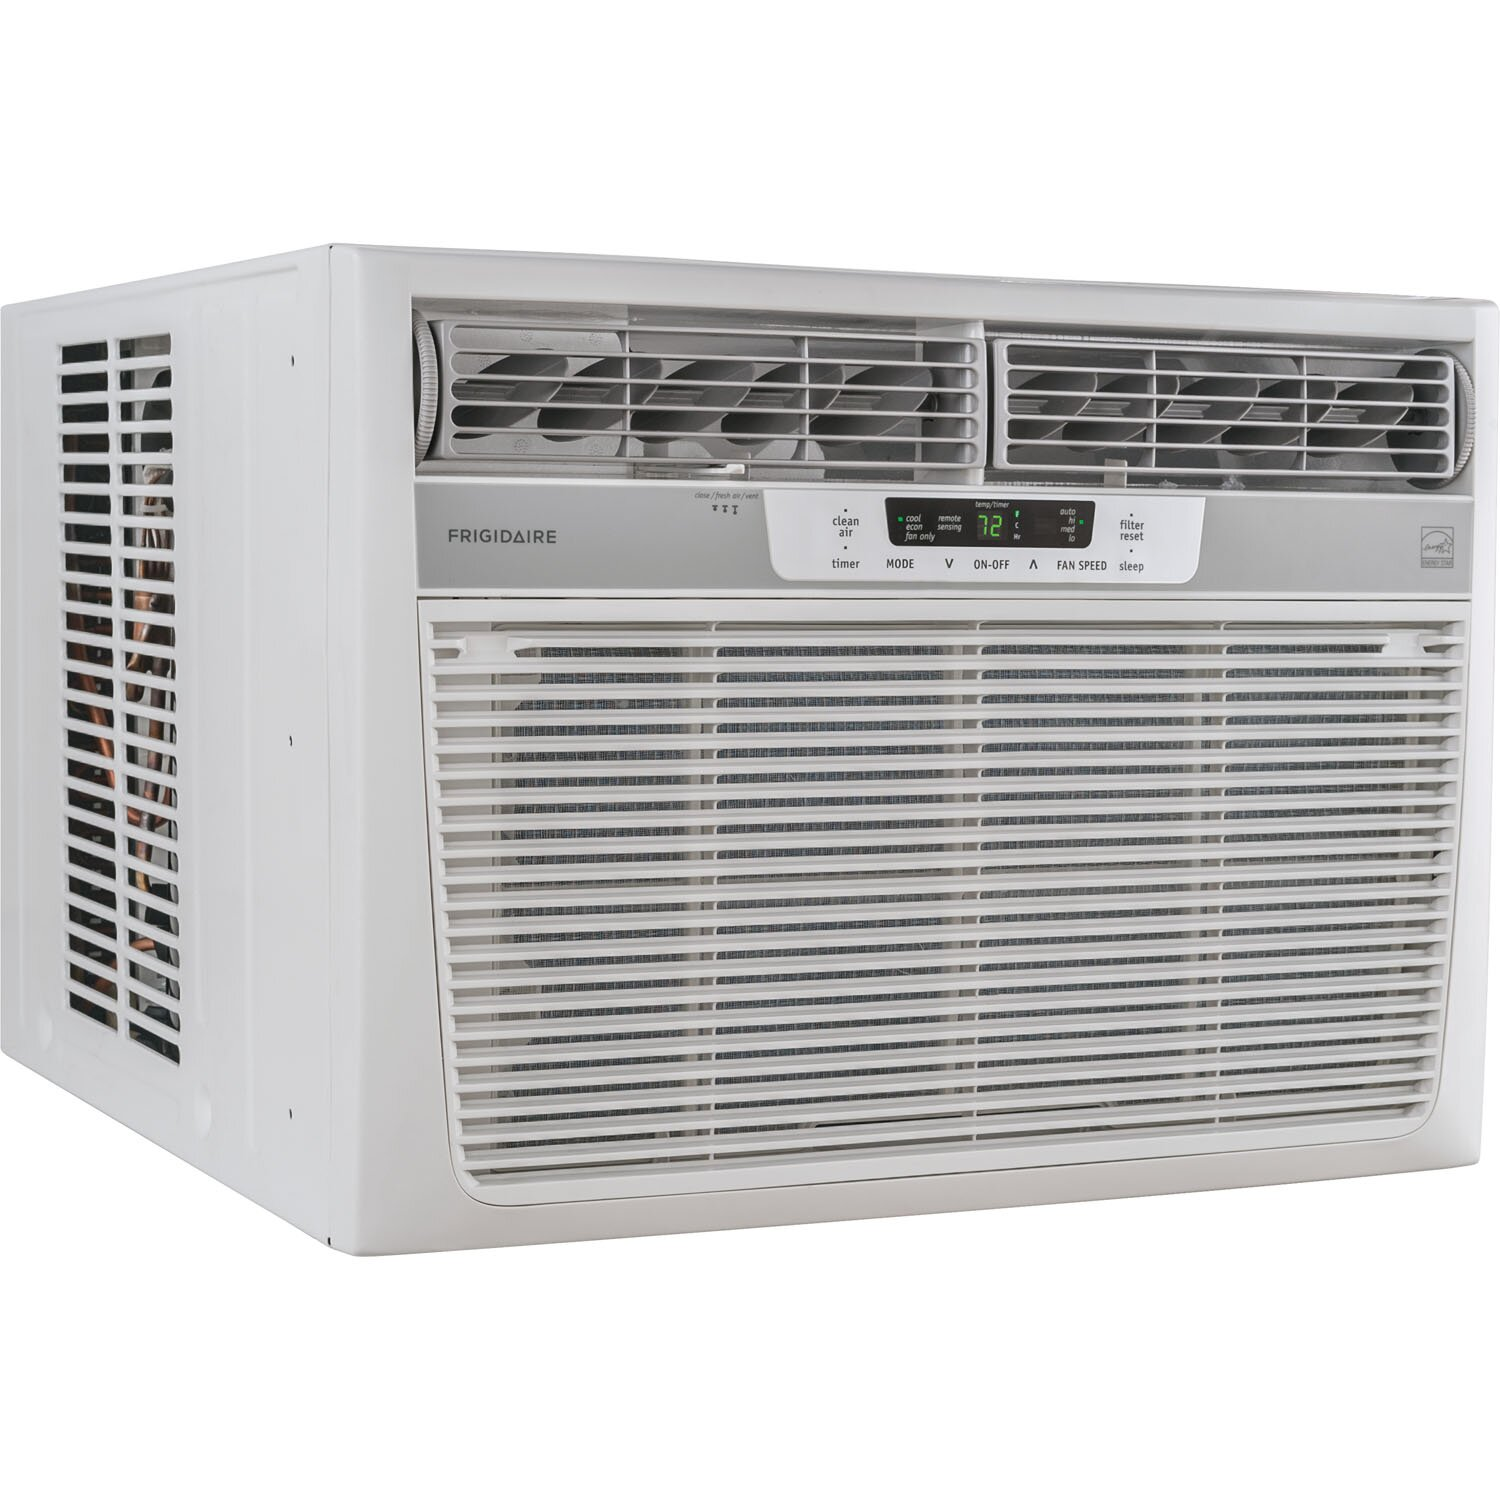 Frigidaire 18 000 BTU Energy Star Window Median Air Conditioner with  #5A514D